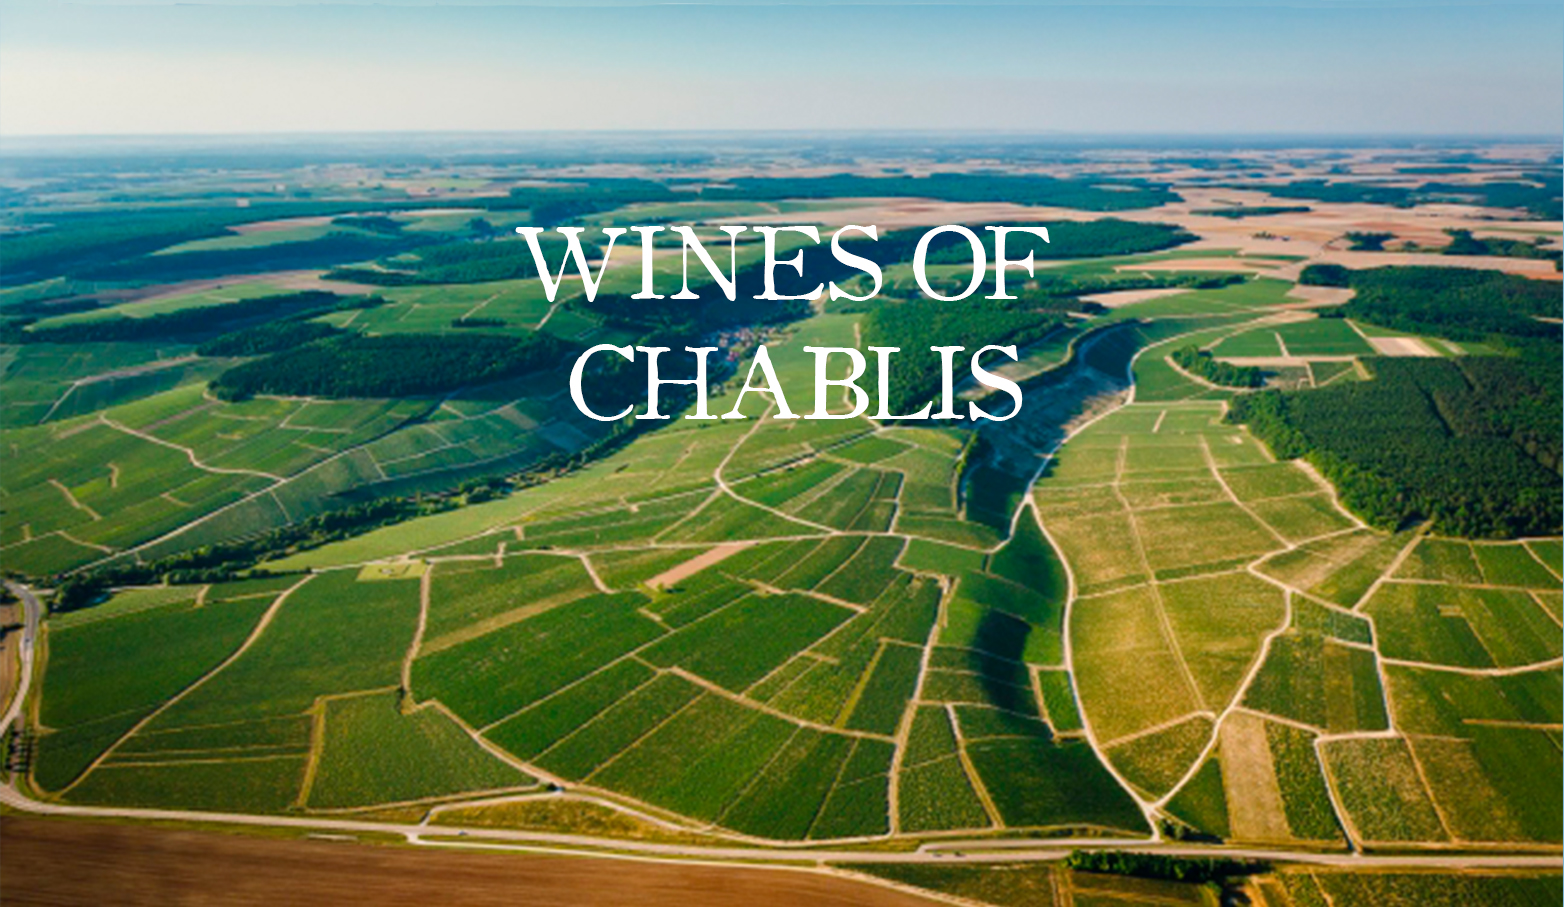 Chablis-Wine-Region-Overhead-View